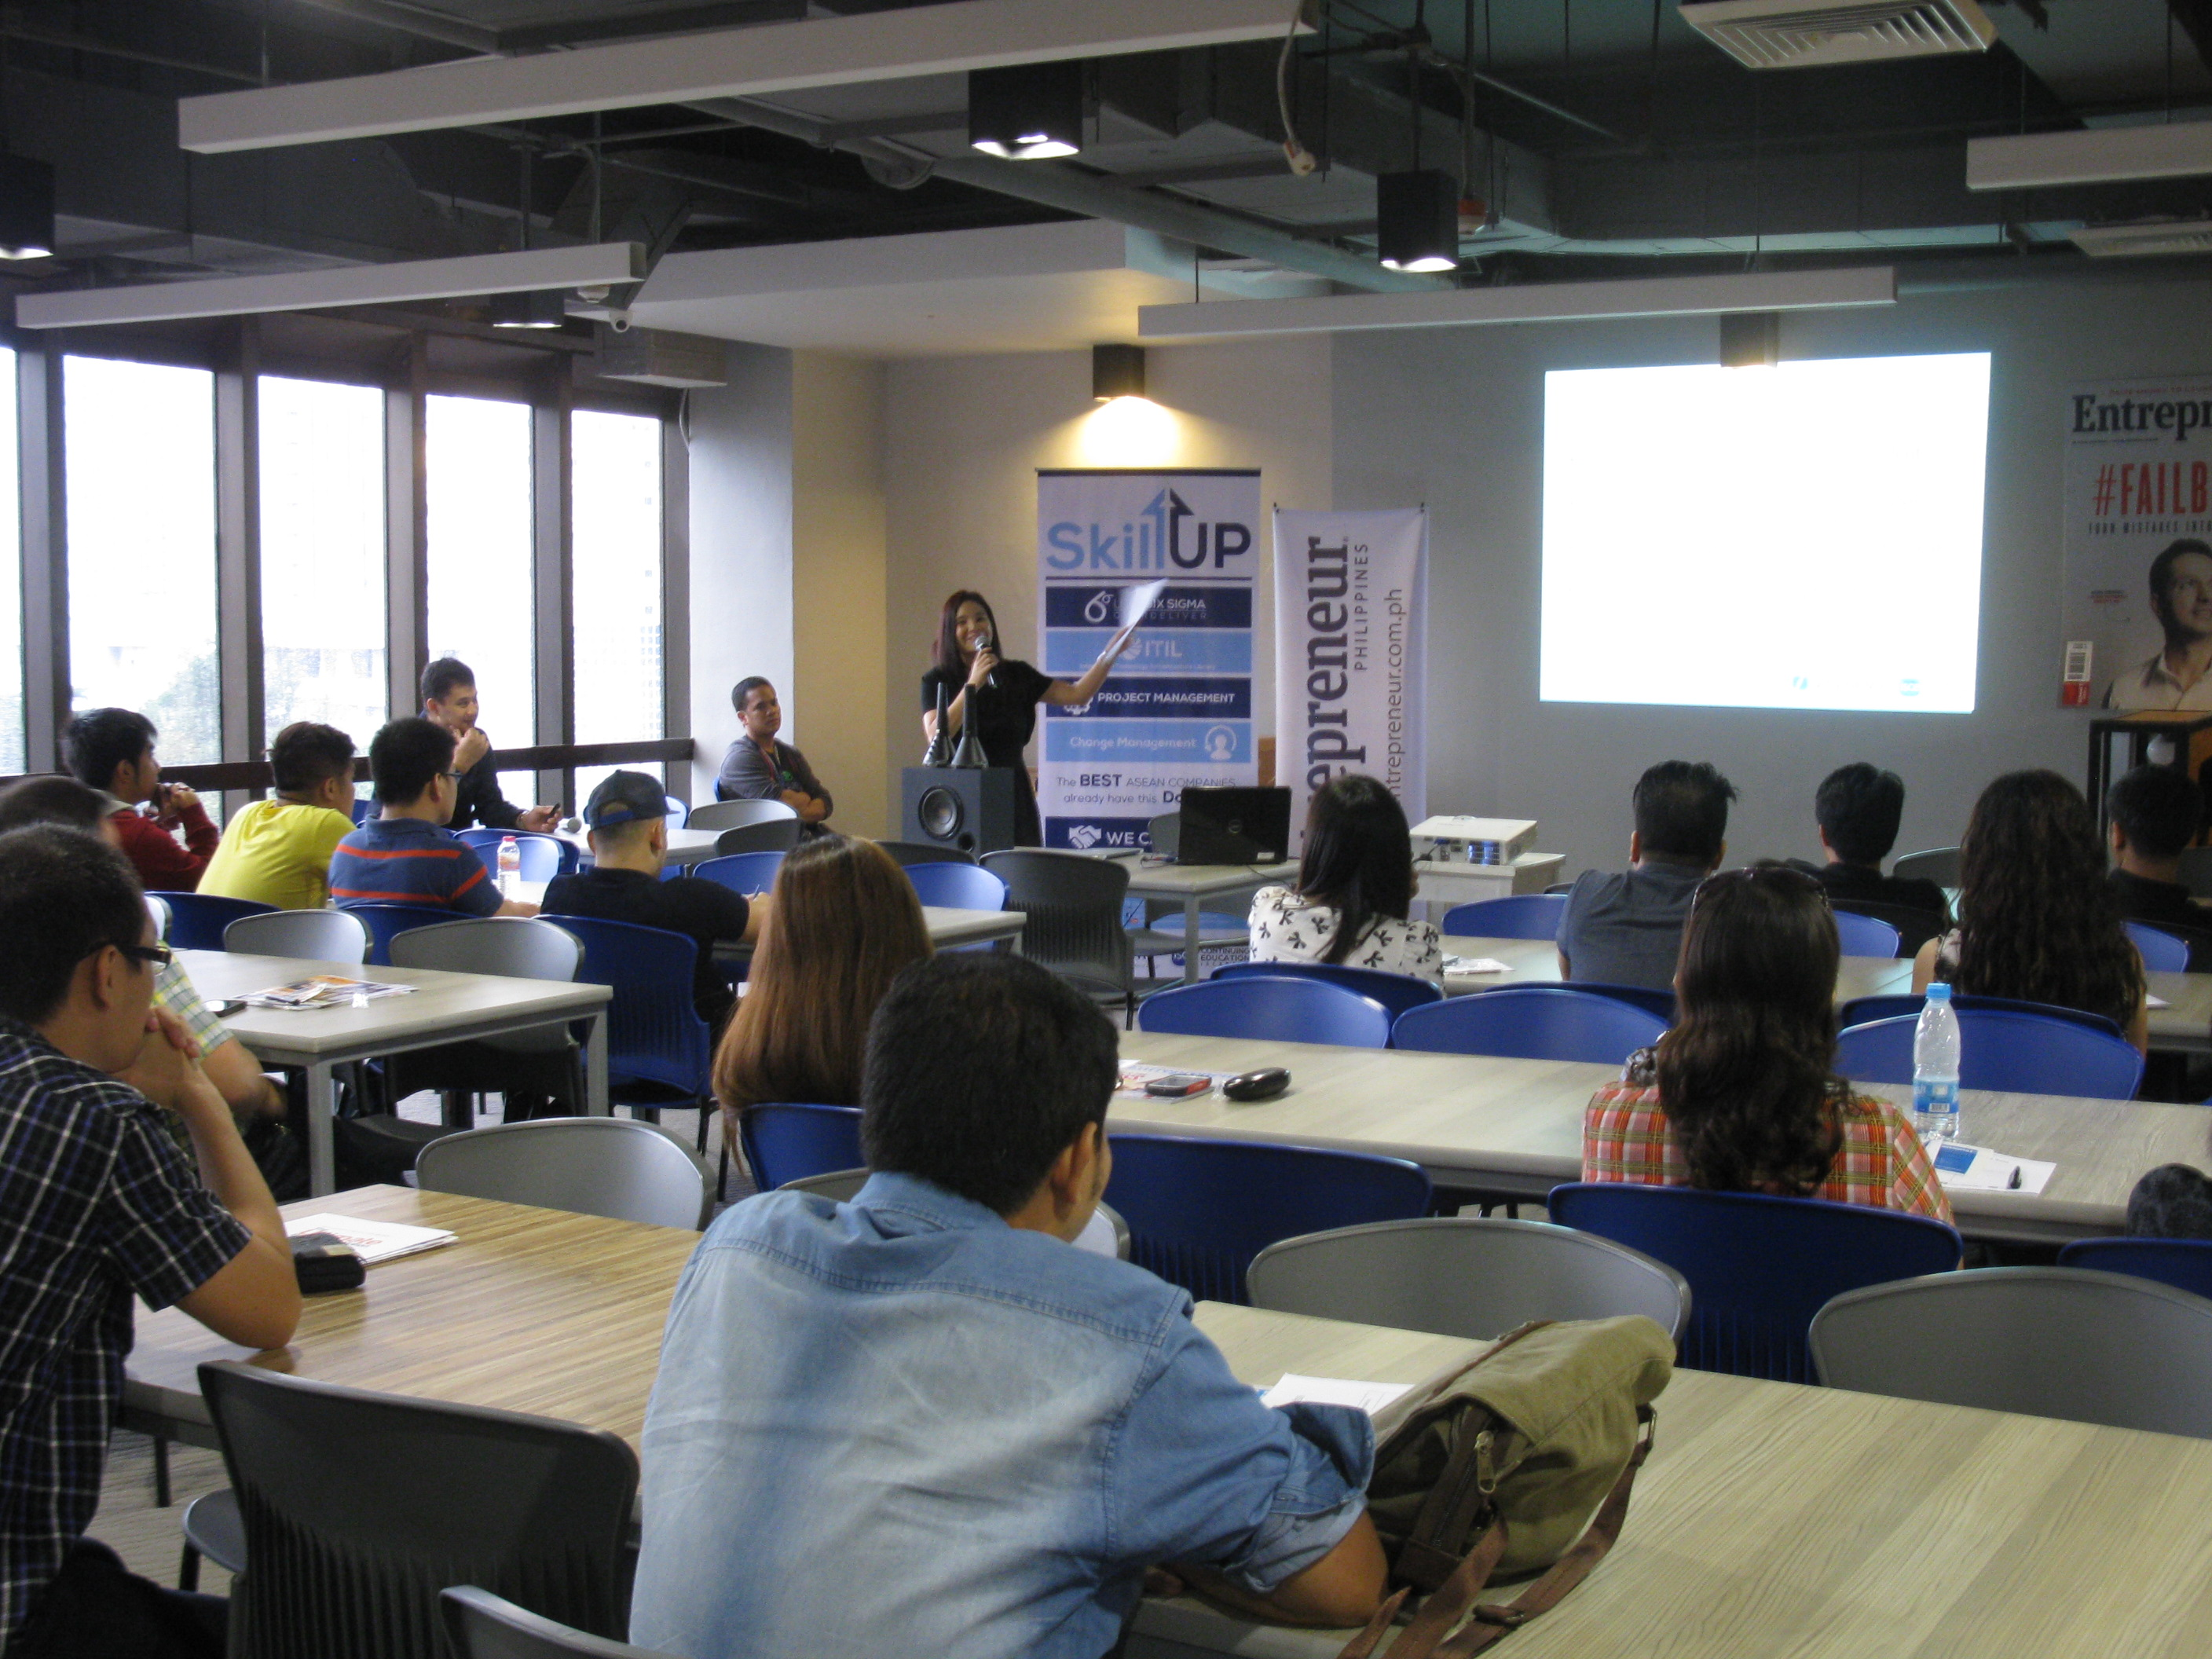 iAcademy's 'Startup Brew' seminar encourages employees to become entrepreneurs